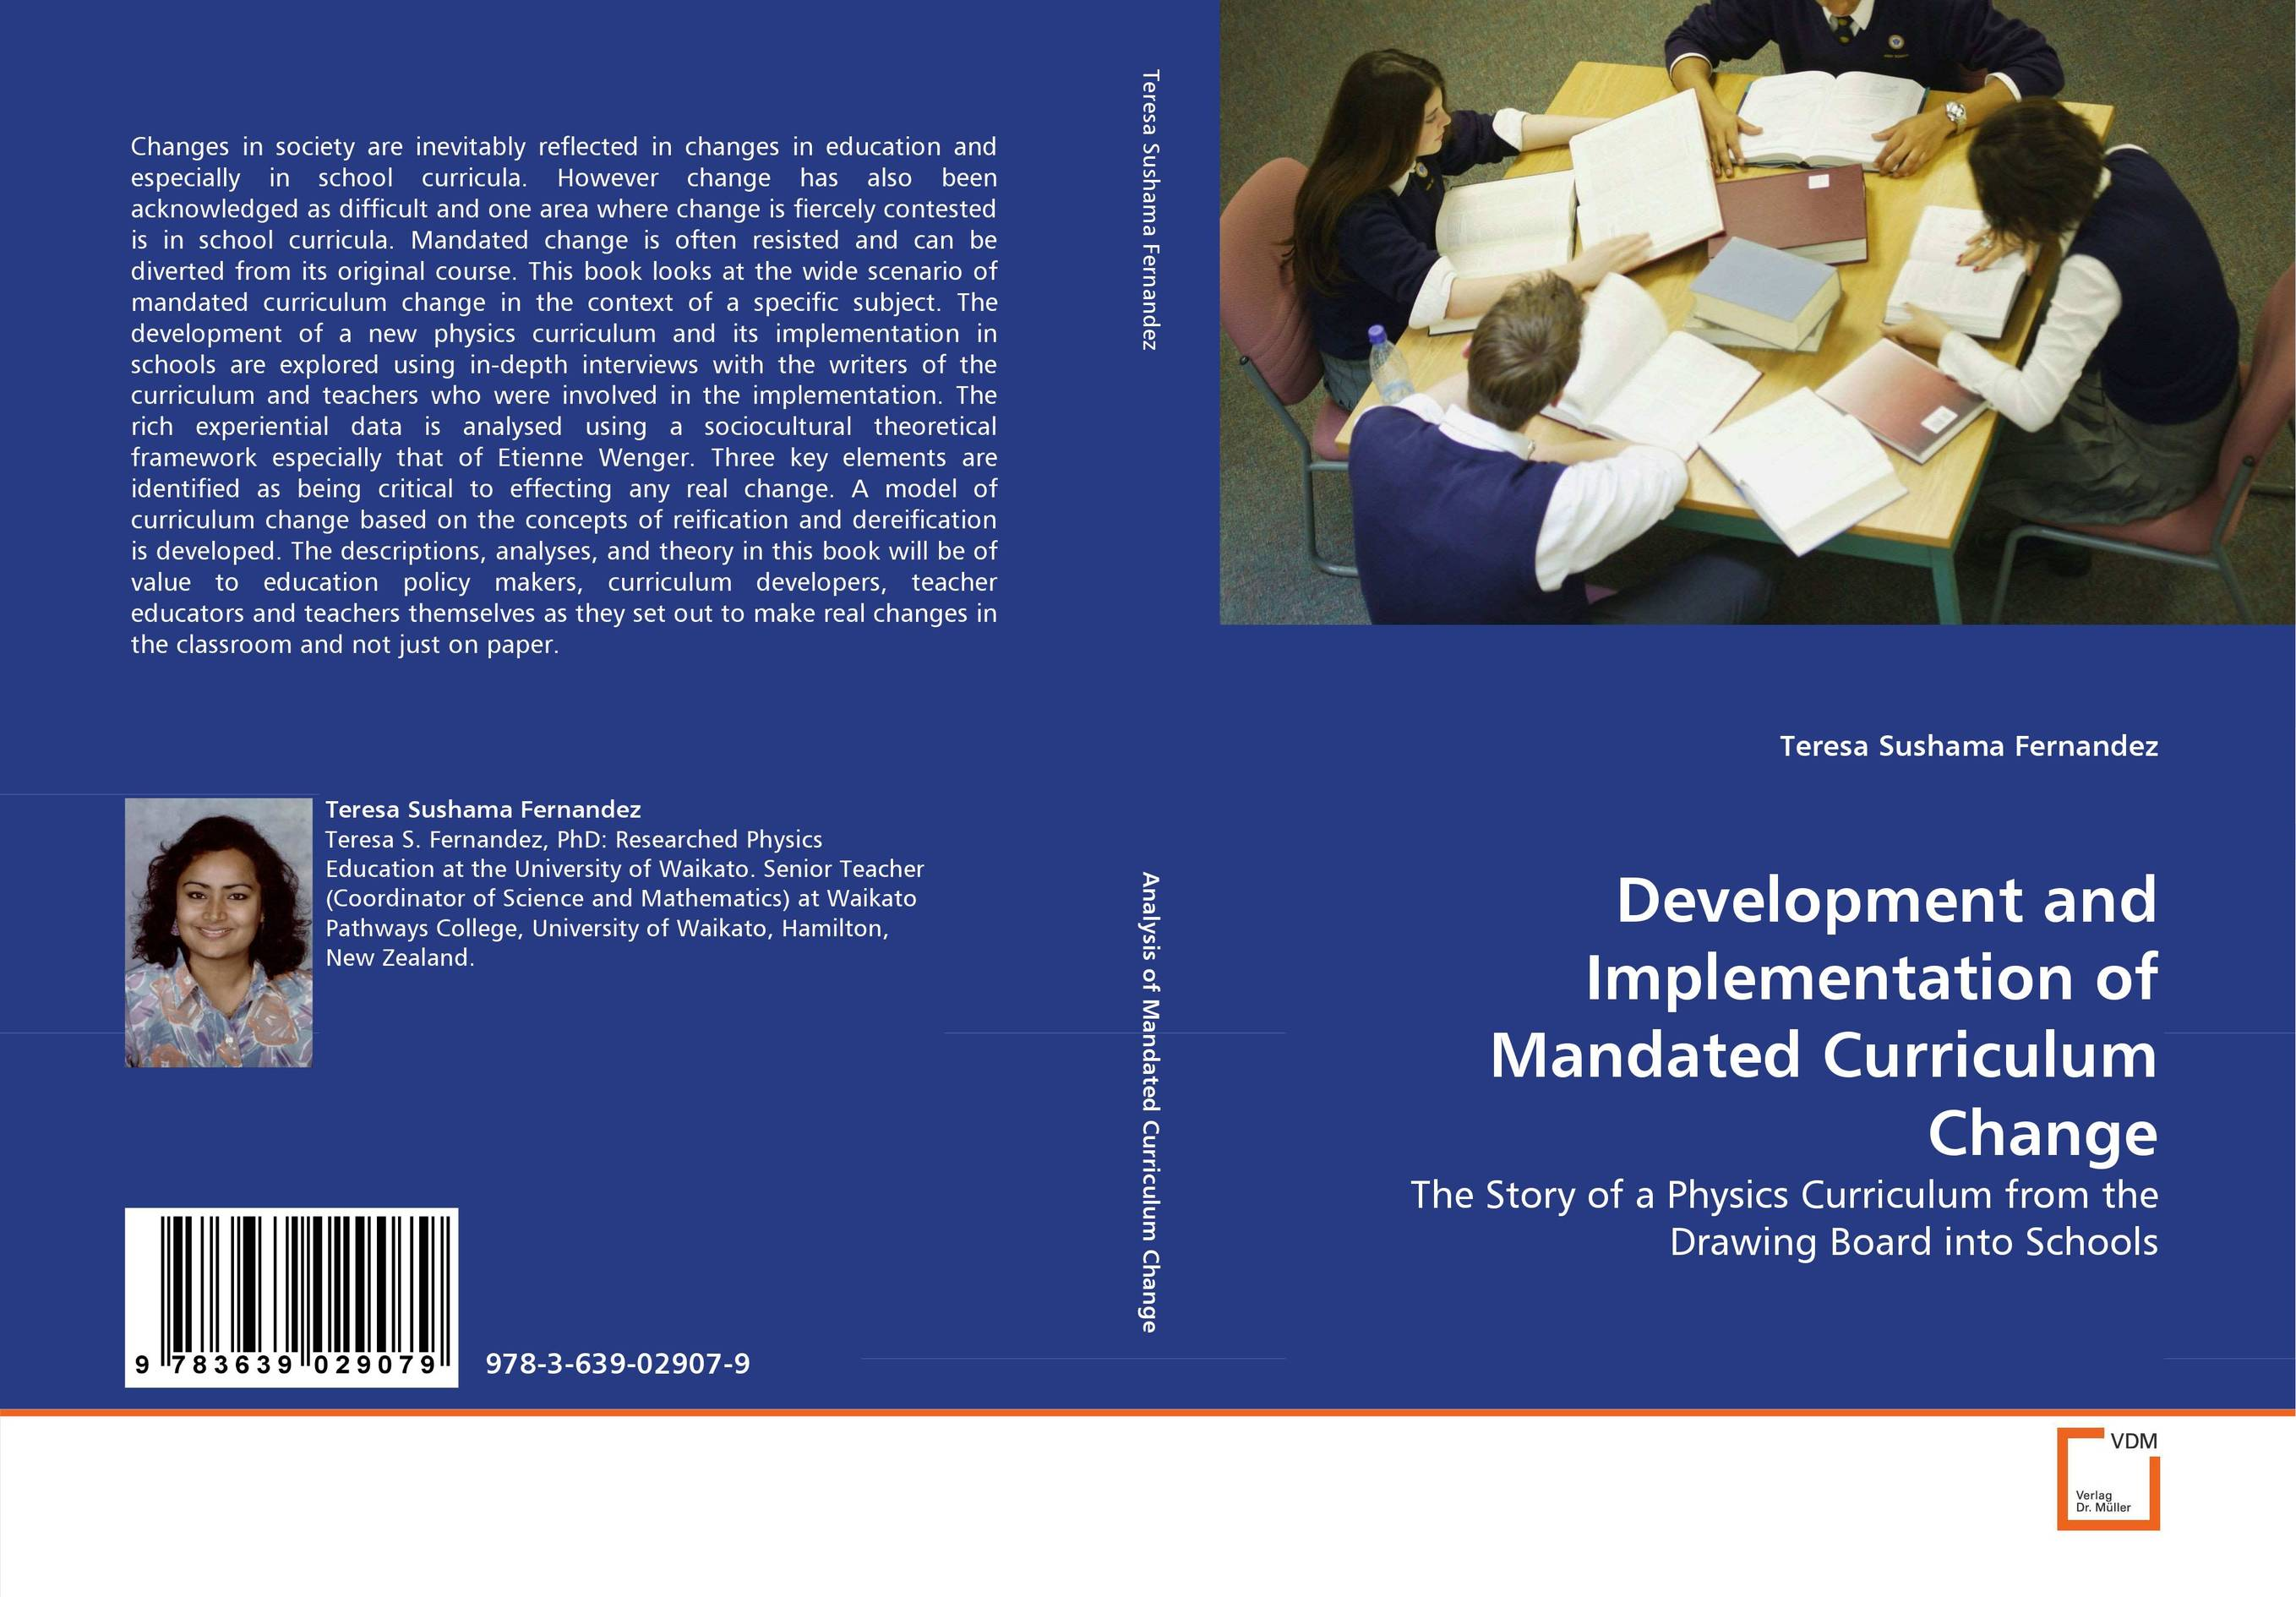 Development and Implementation of Mandated Curriculum Change curriculum implementation